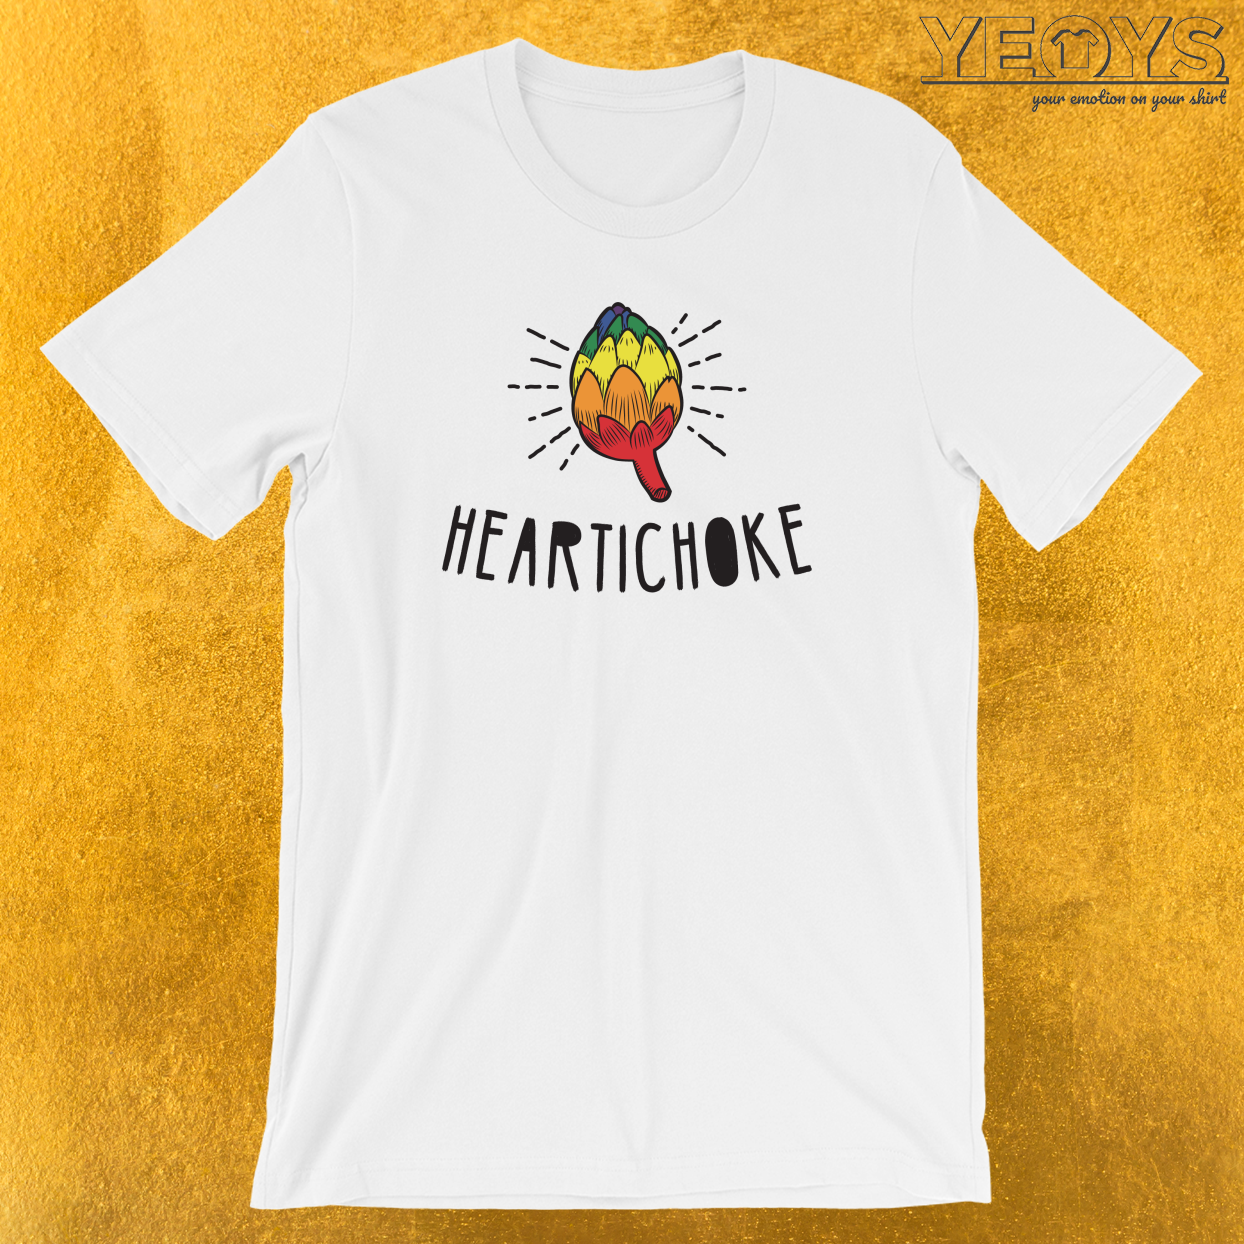 Heartichoke T-Shirt